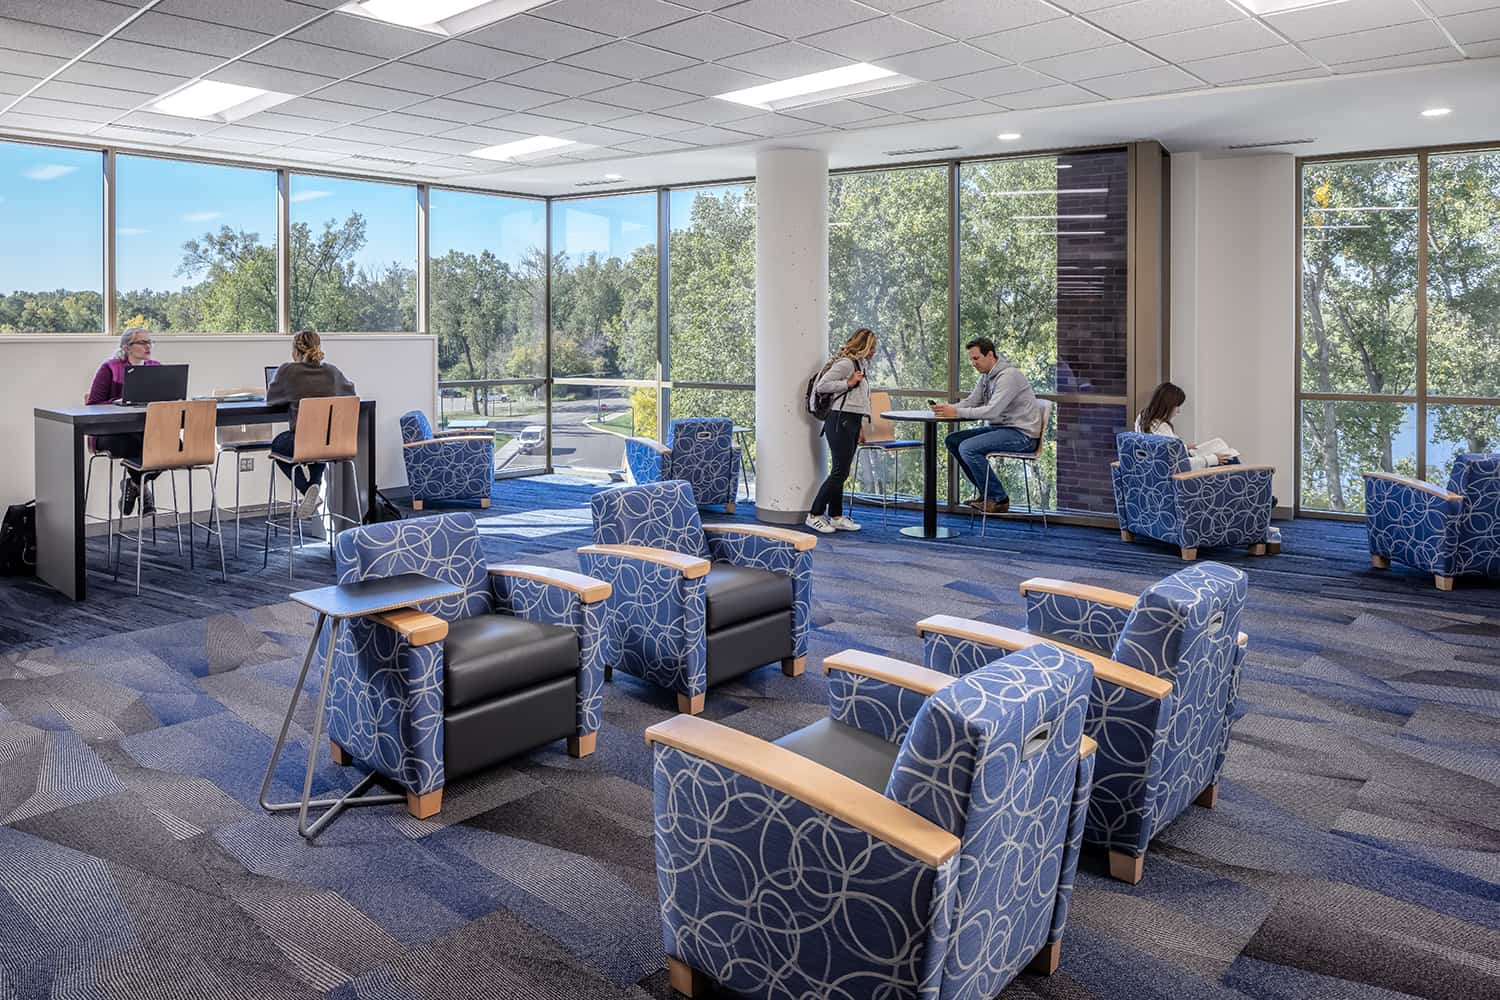 A lakeview lounge offers a quiet place for students to study together, complete with bar-height desk and comfortable armchairs.